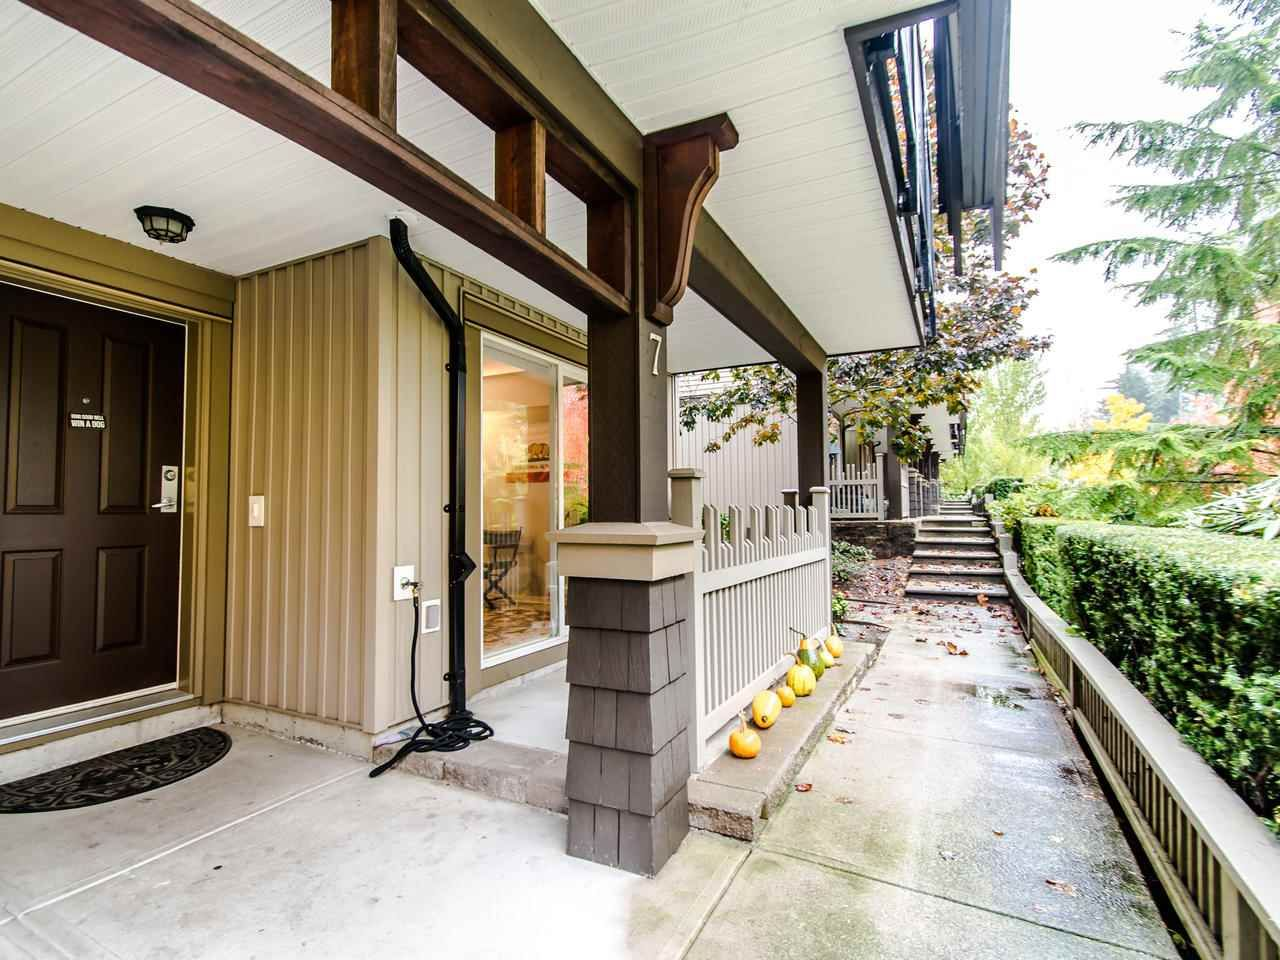 """Photo 2: Photos: 7 2200 PANORAMA Drive in Port Moody: Heritage Woods PM Townhouse for sale in """"THE QUEST"""" : MLS®# R2414883"""